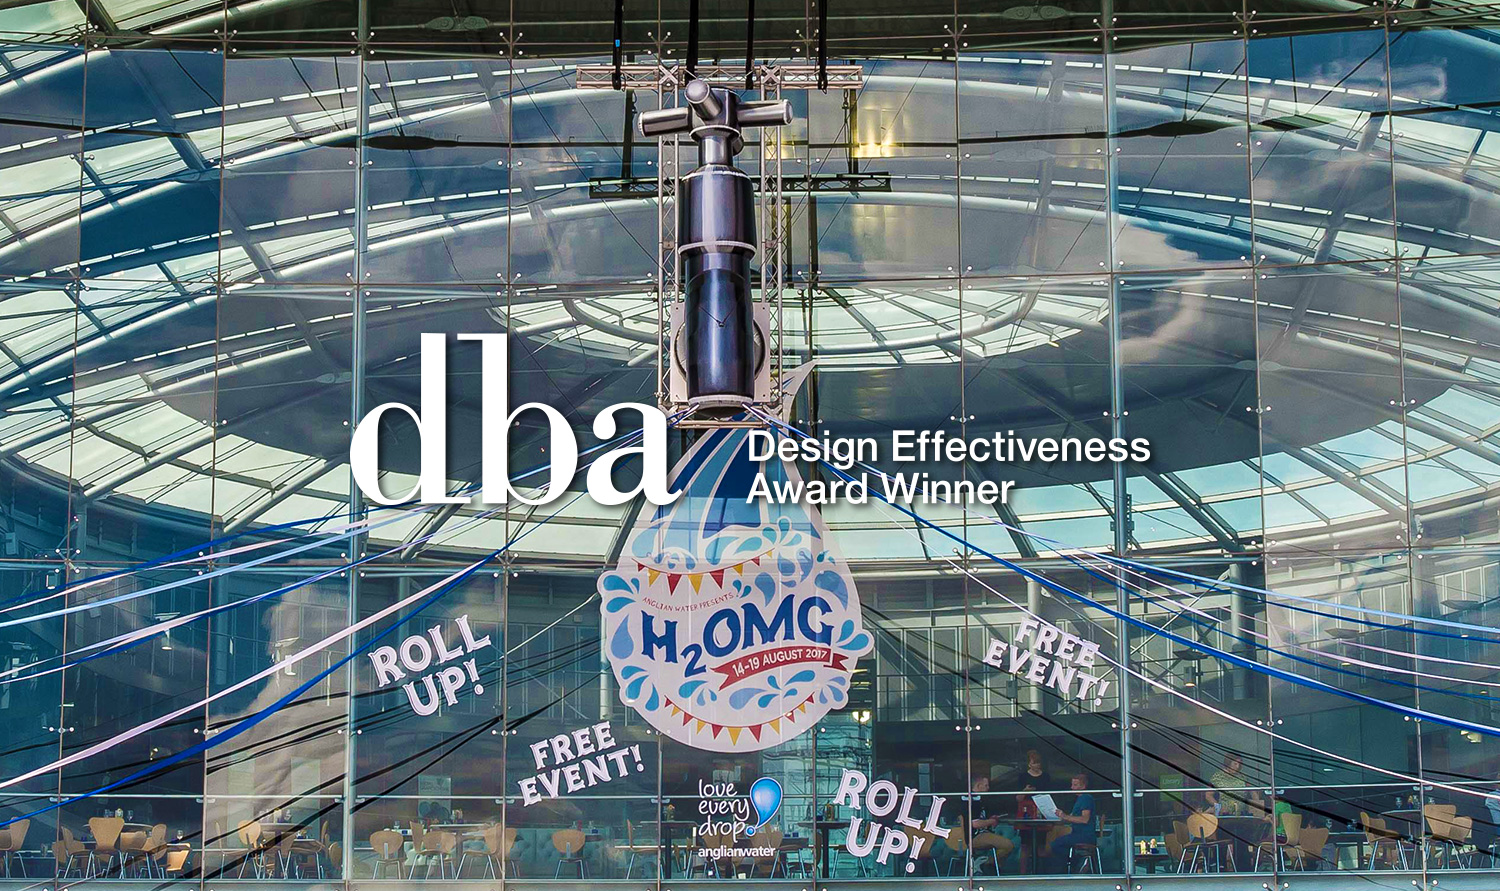 DBA Design Effectiveness WInner image 2